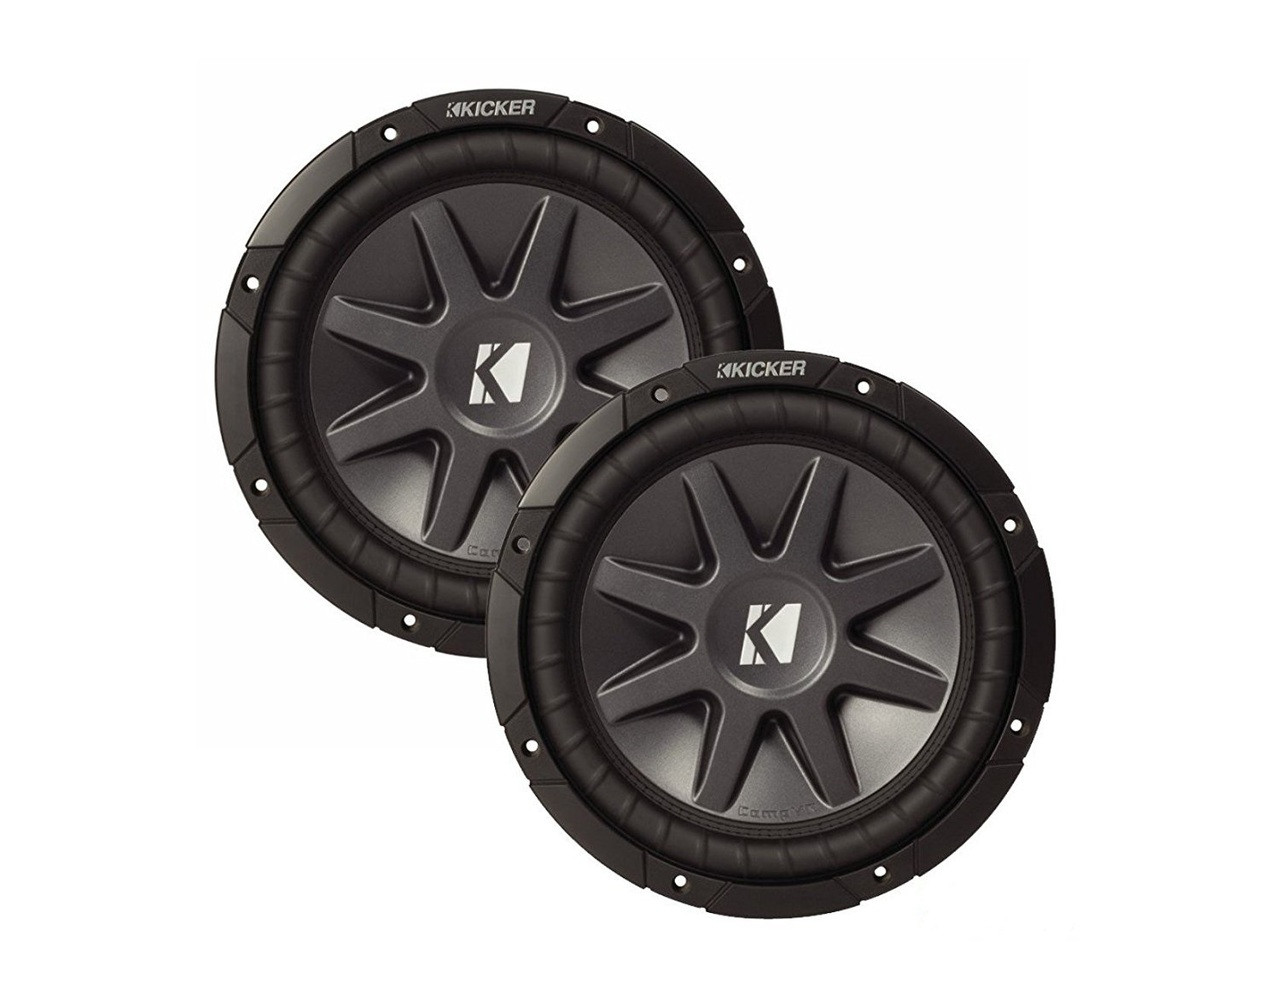 "2 x BRAND NEW KICKER COMPVR 10CVR124 12"" DUAL 4-OHM CAR AUDIO SUBWOOFER 1600 WATTS"